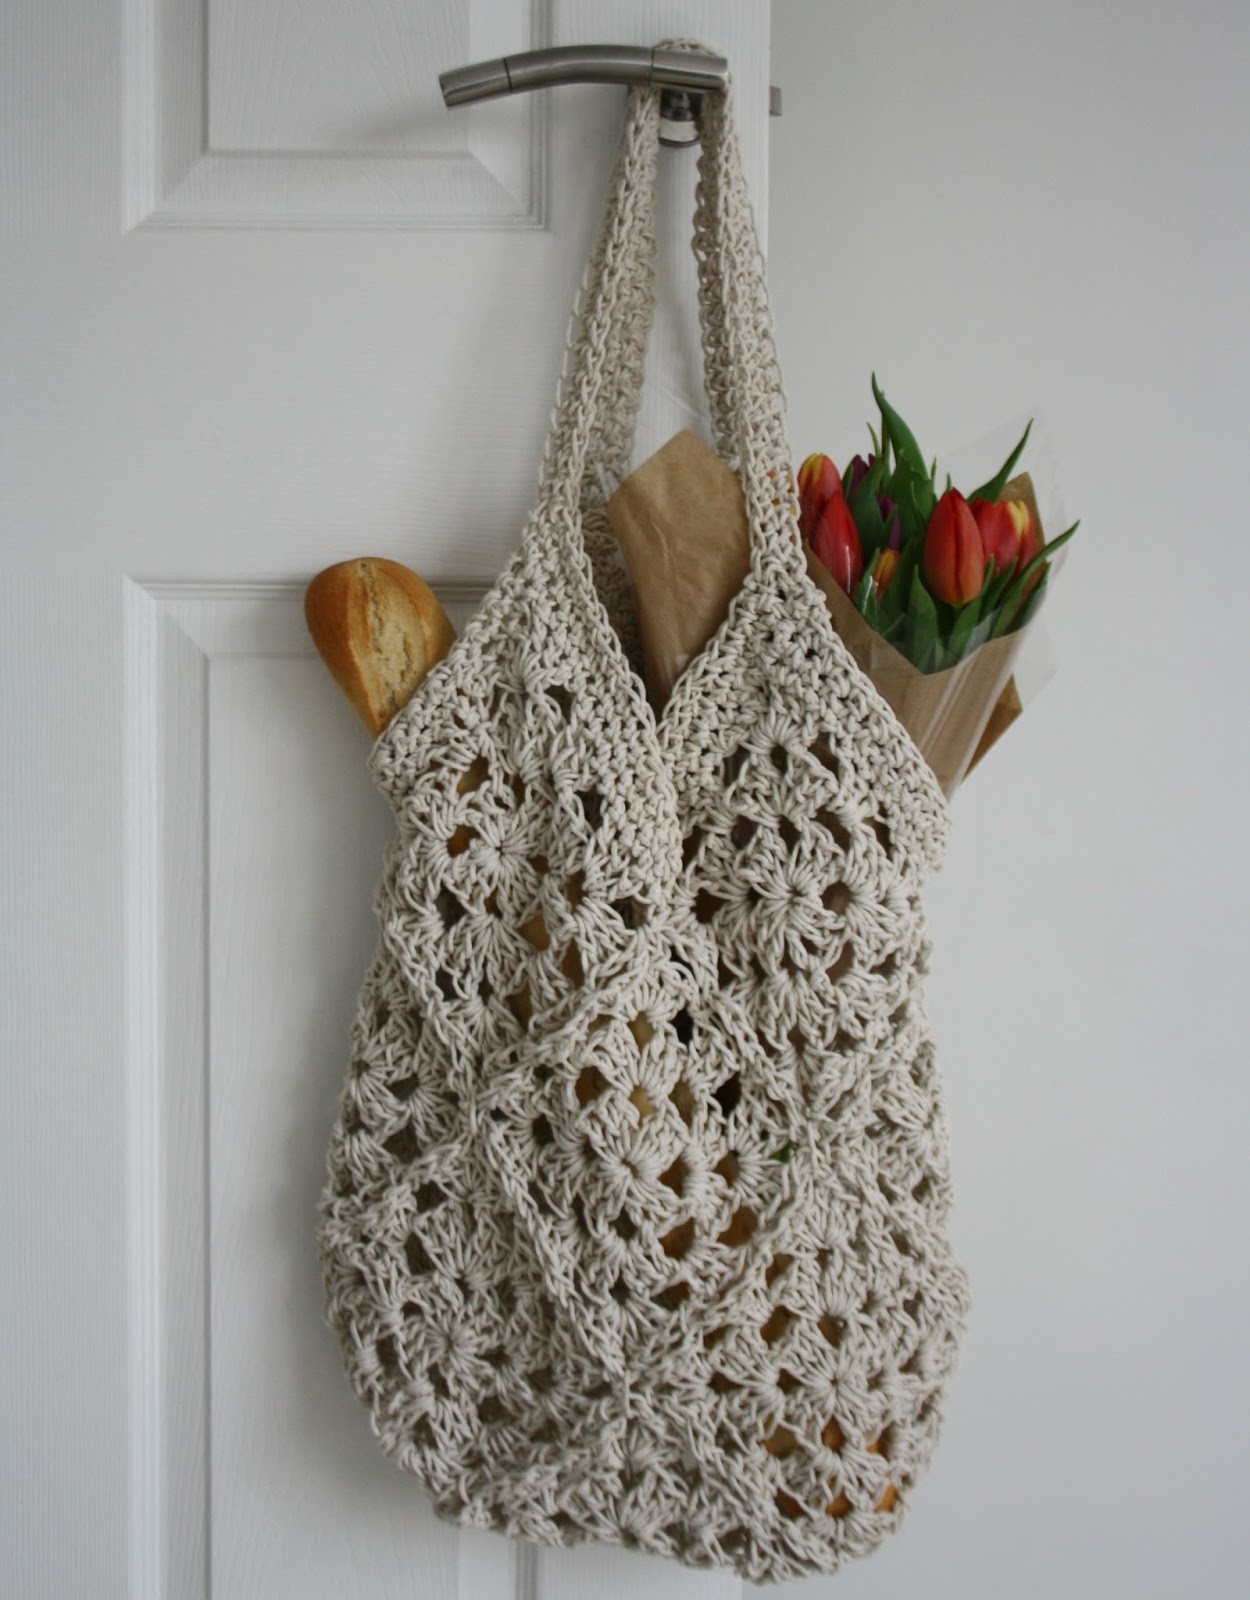 Crochet Shopping Bag Elegant Tales From A Happy House A String Shopping Bag Of New 47 Ideas Crochet Shopping Bag